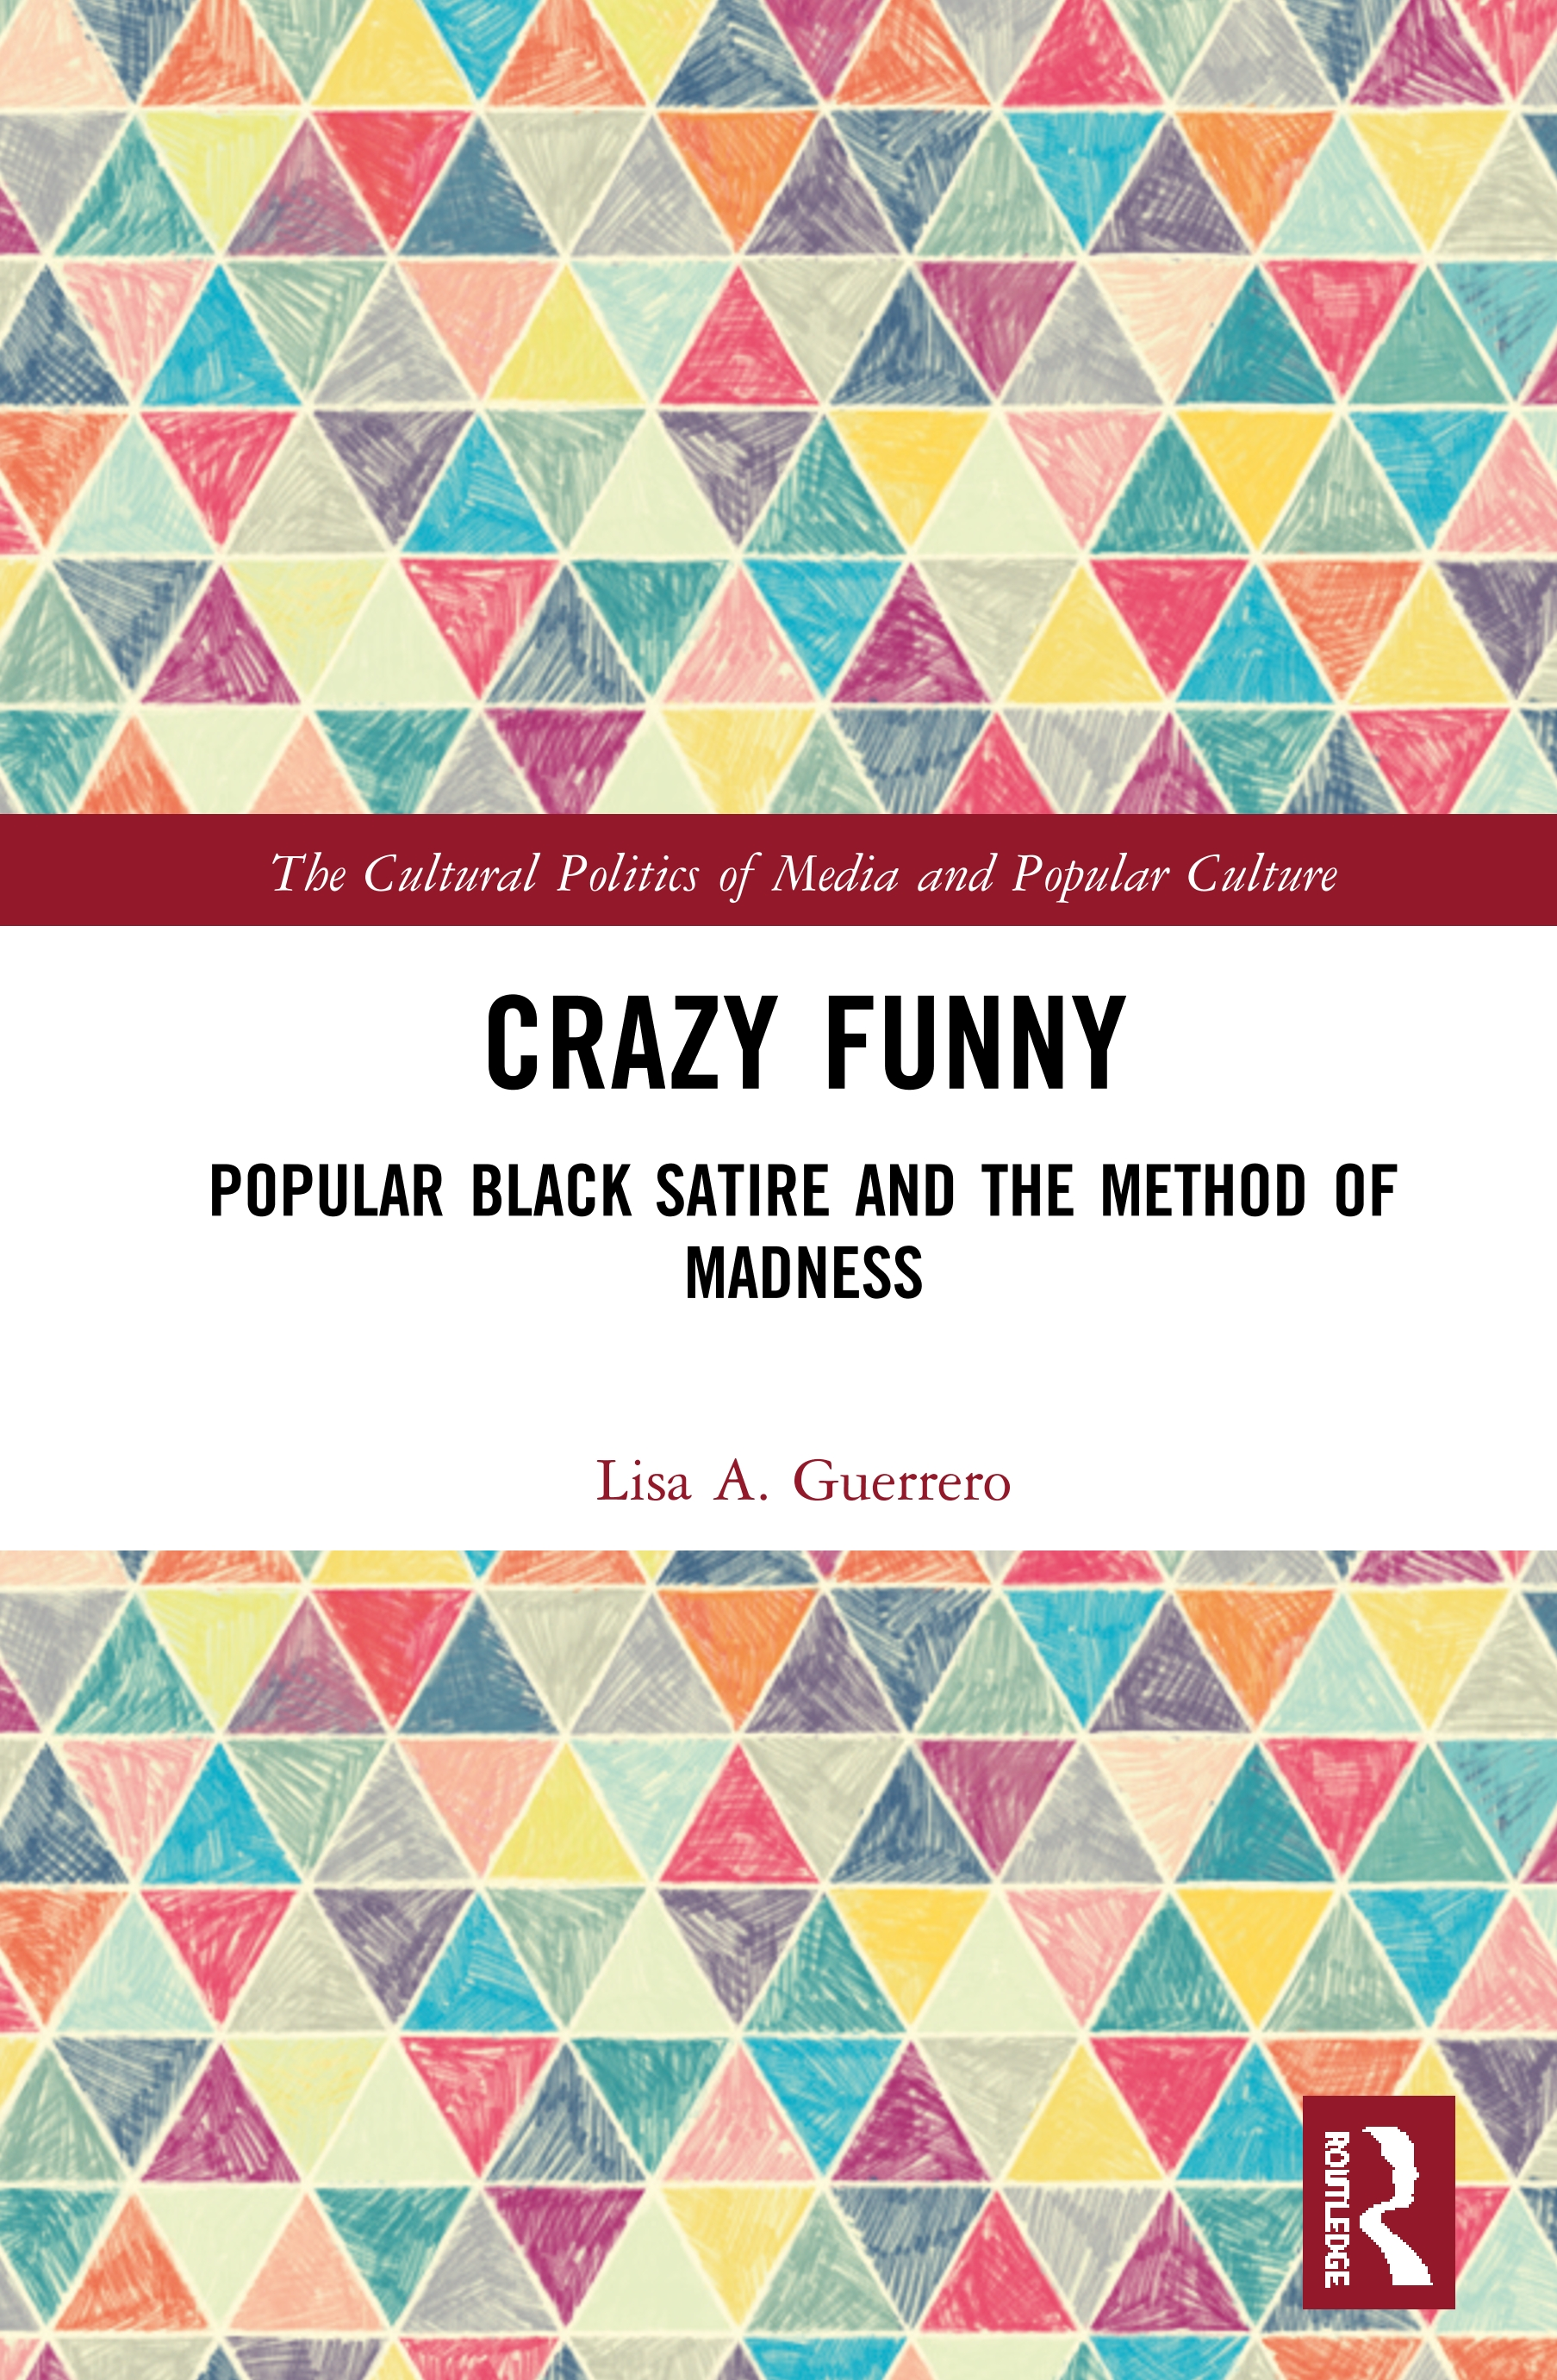 Crazy Funny: Popular Black Satire and The Method of Madness book cover